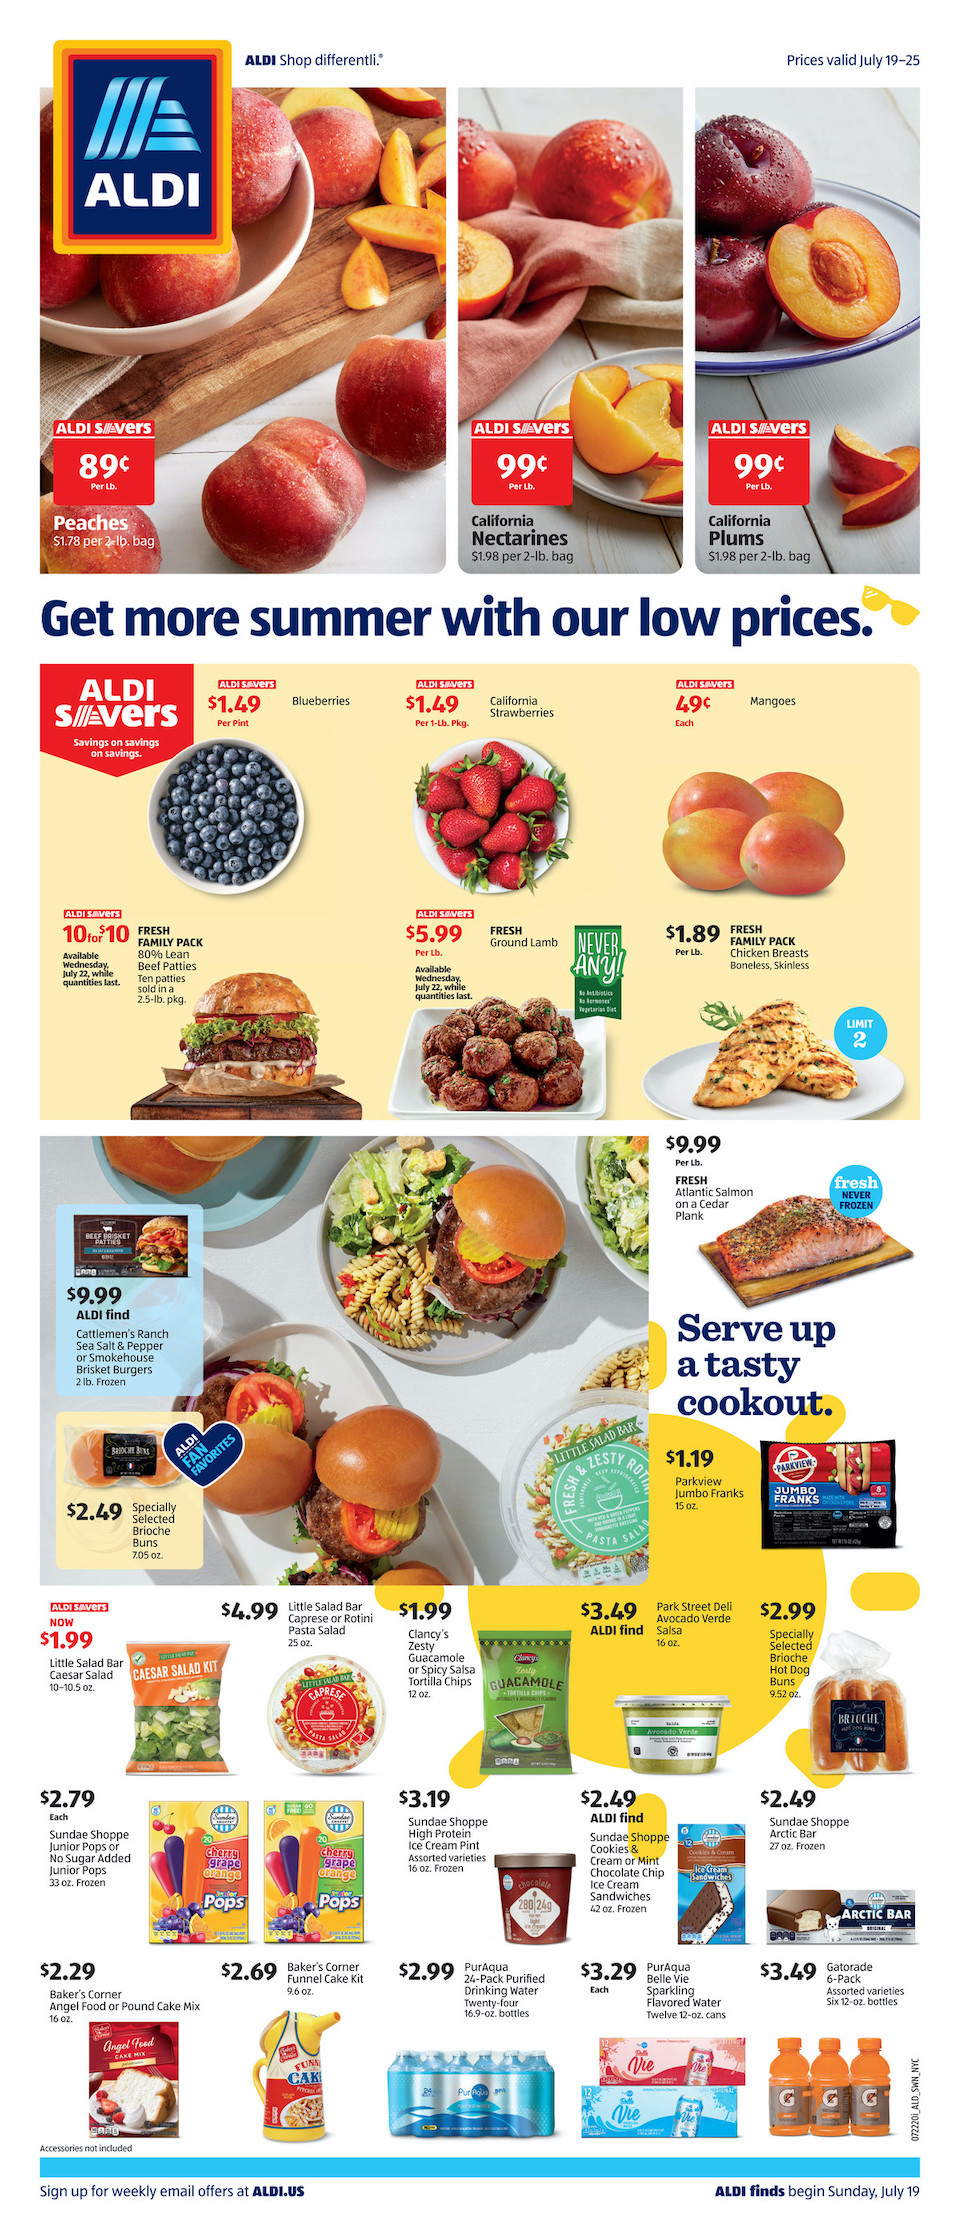 aldi july sale weekly ad valid from jul 19 25 2020